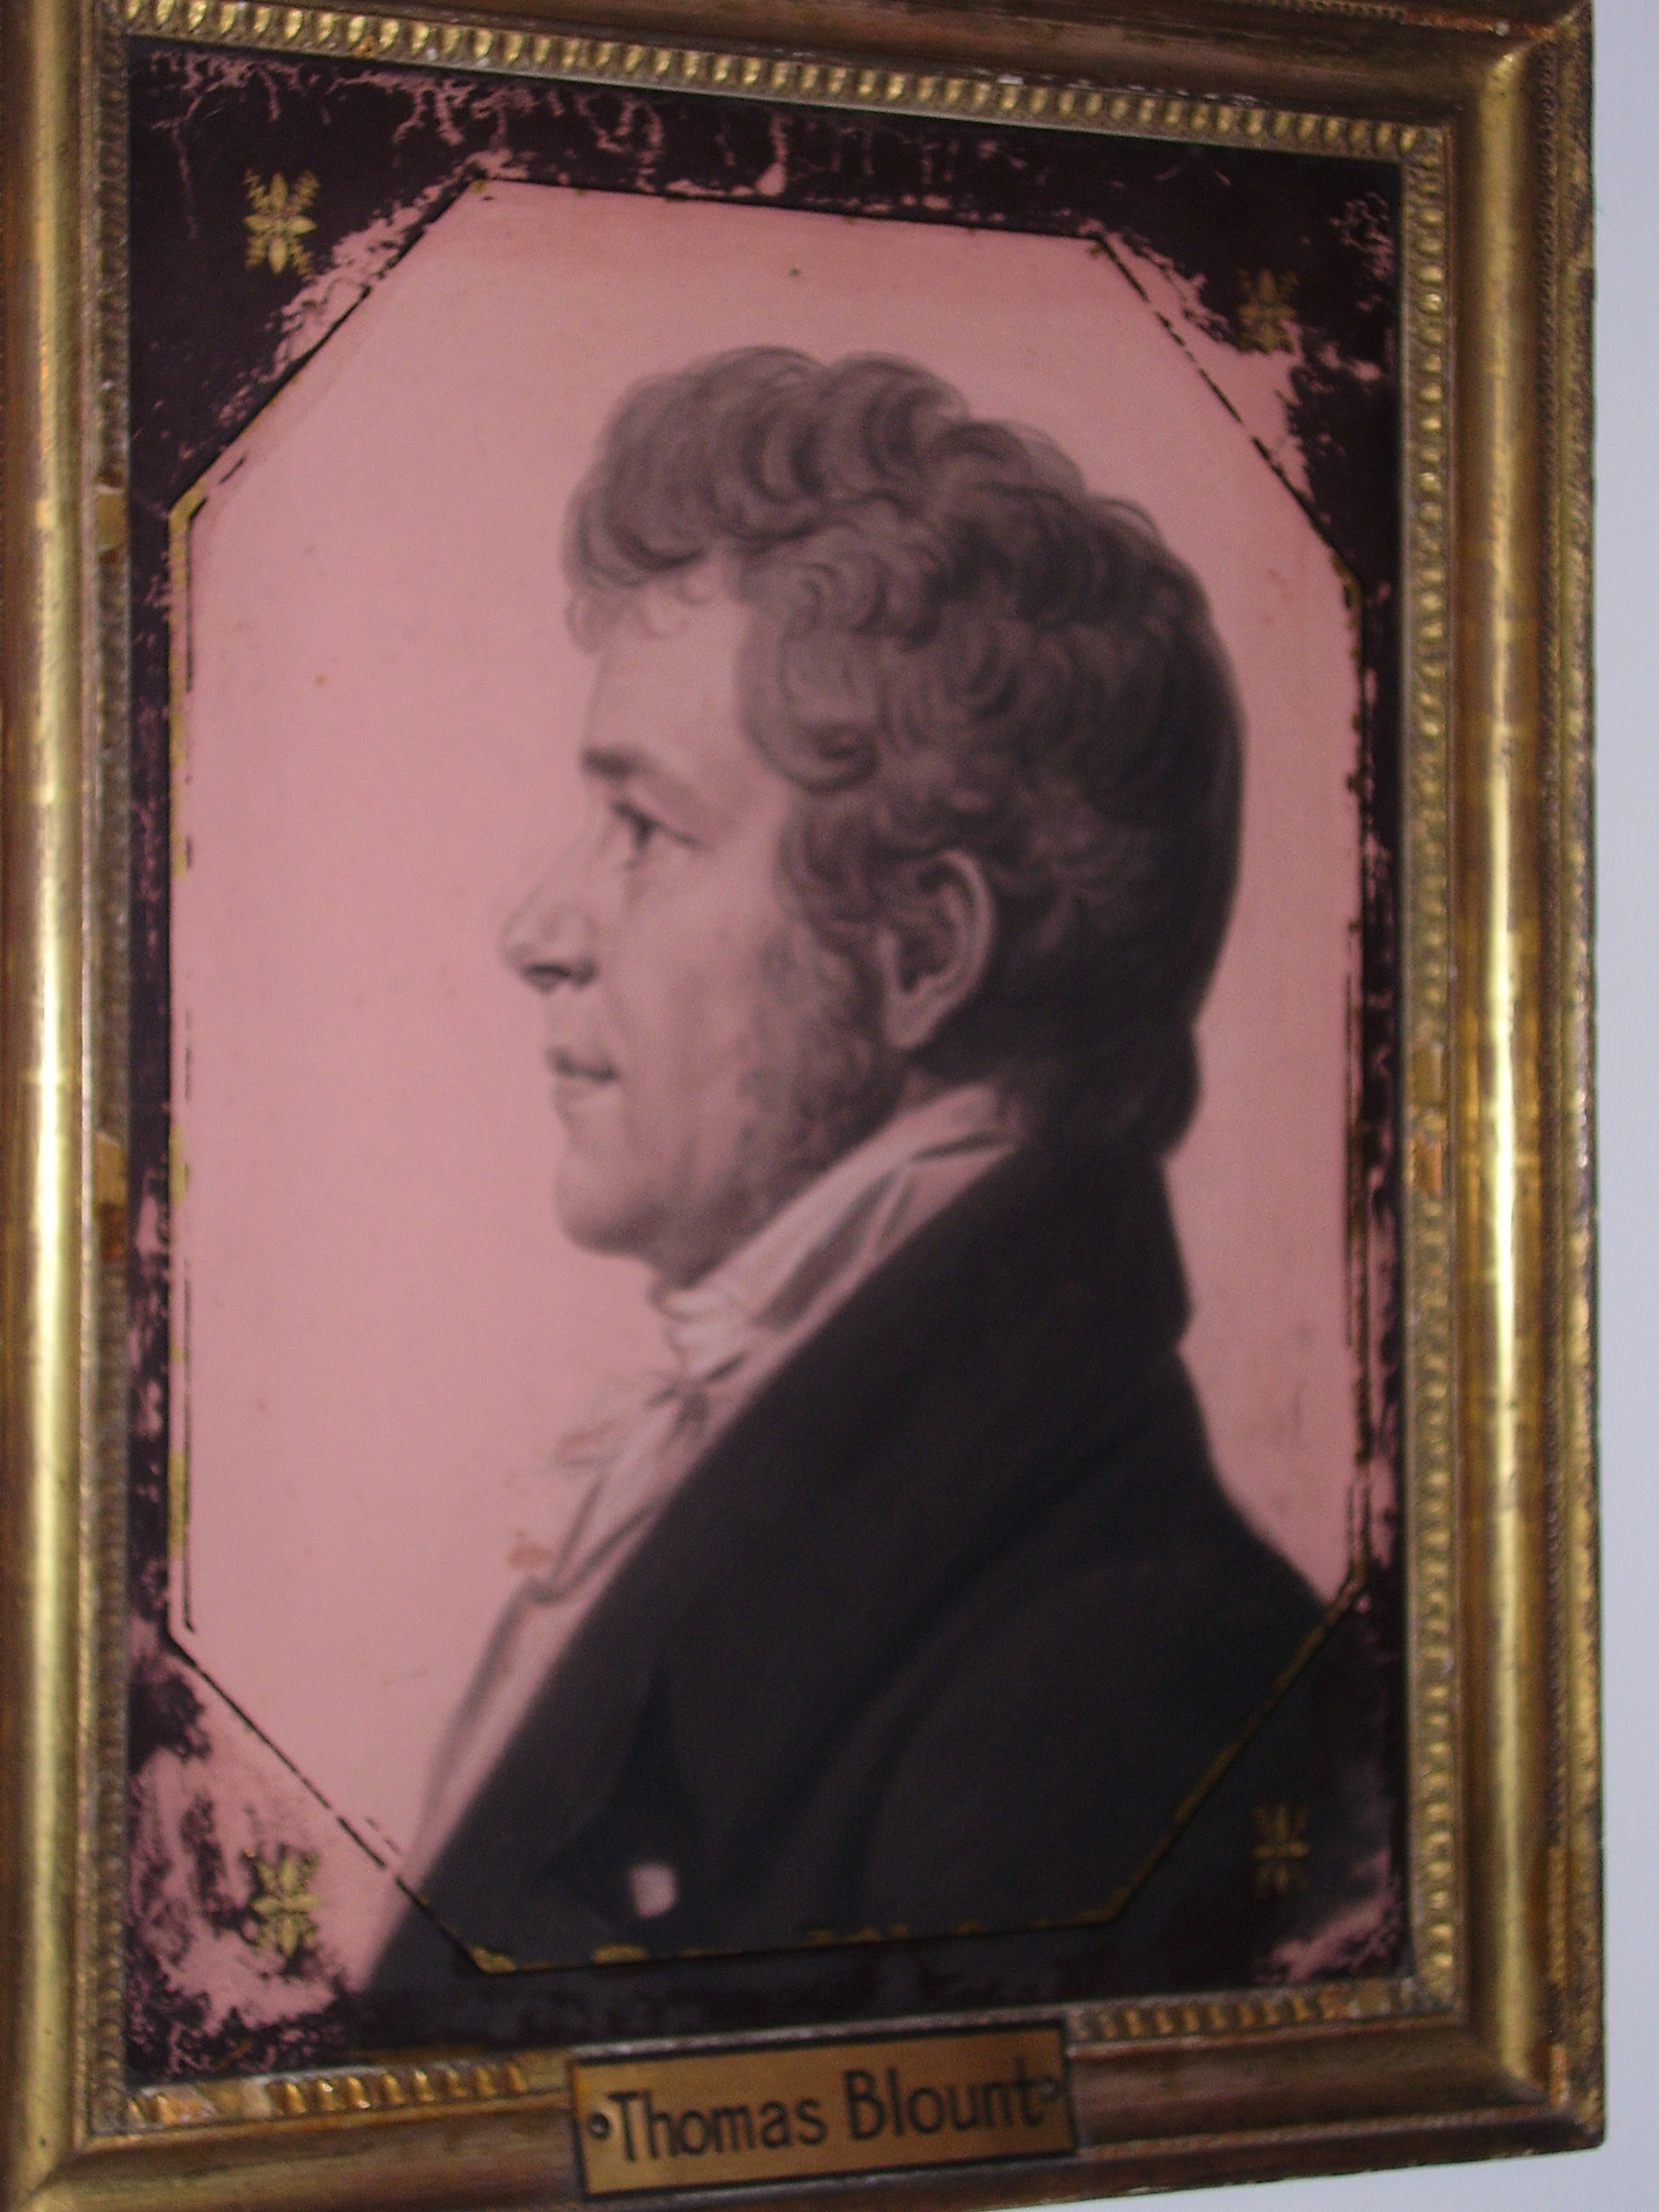 Portrait of Thomas Blount. Original owner of the house & he served as Congressman of eastern North Carolina until his death in 1812. The portrait was painted by St. Memmes.